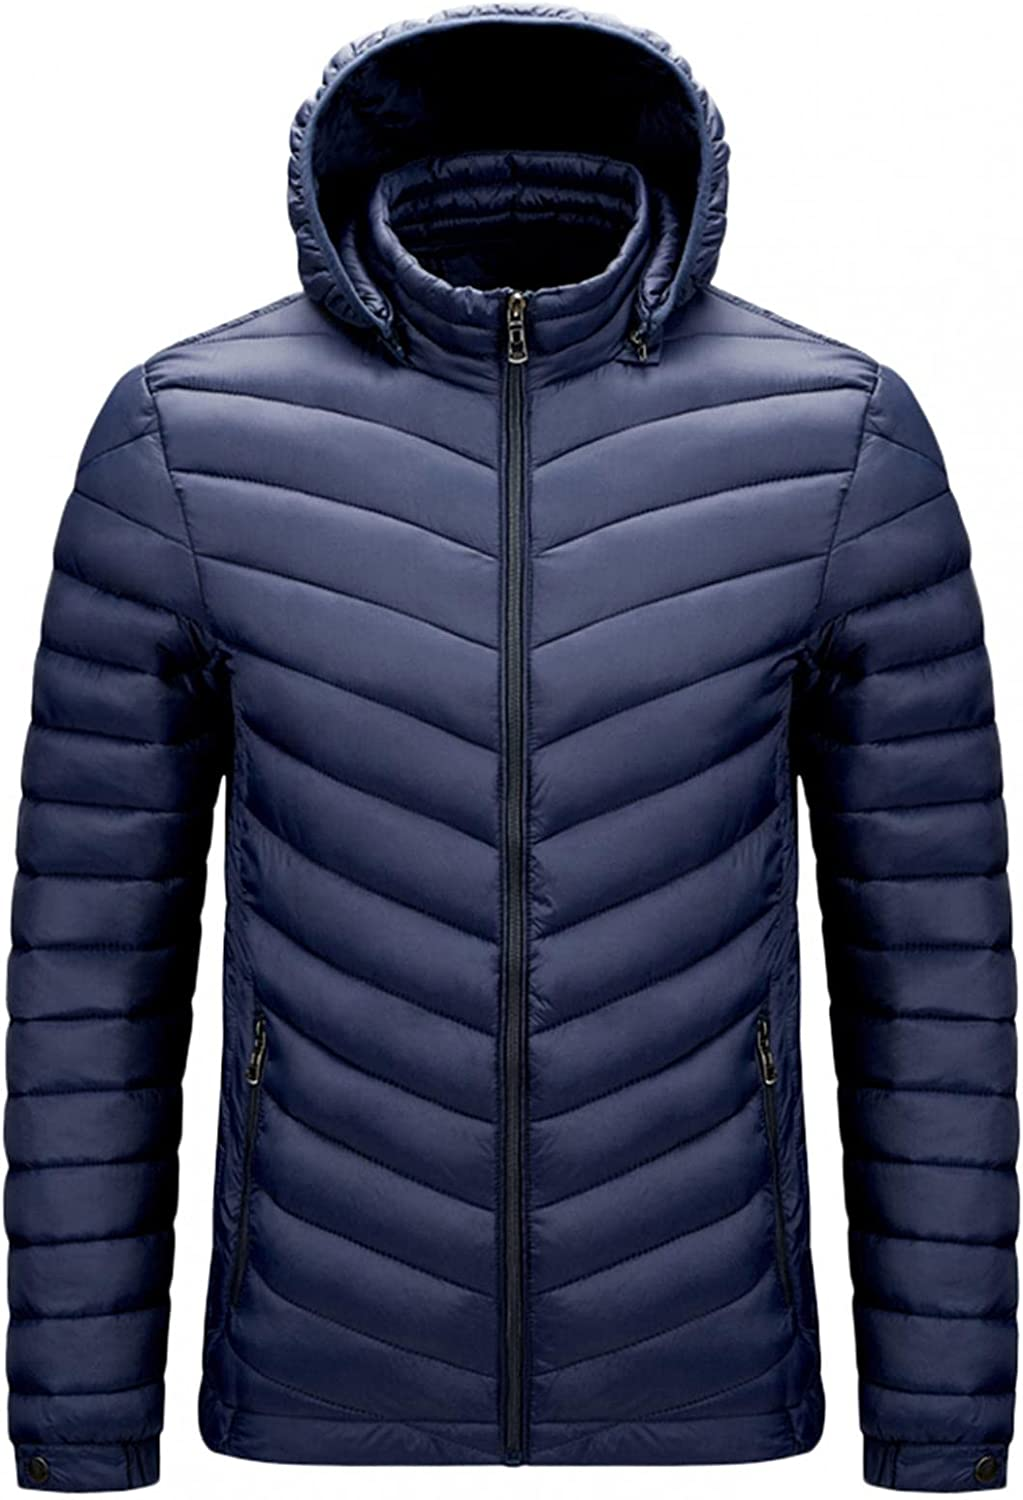 XUNFUN Men's Ultralight Packable Down Jackets Casual Breathable Winter Parka Puffer Down Coats Outwear with Removable Hood